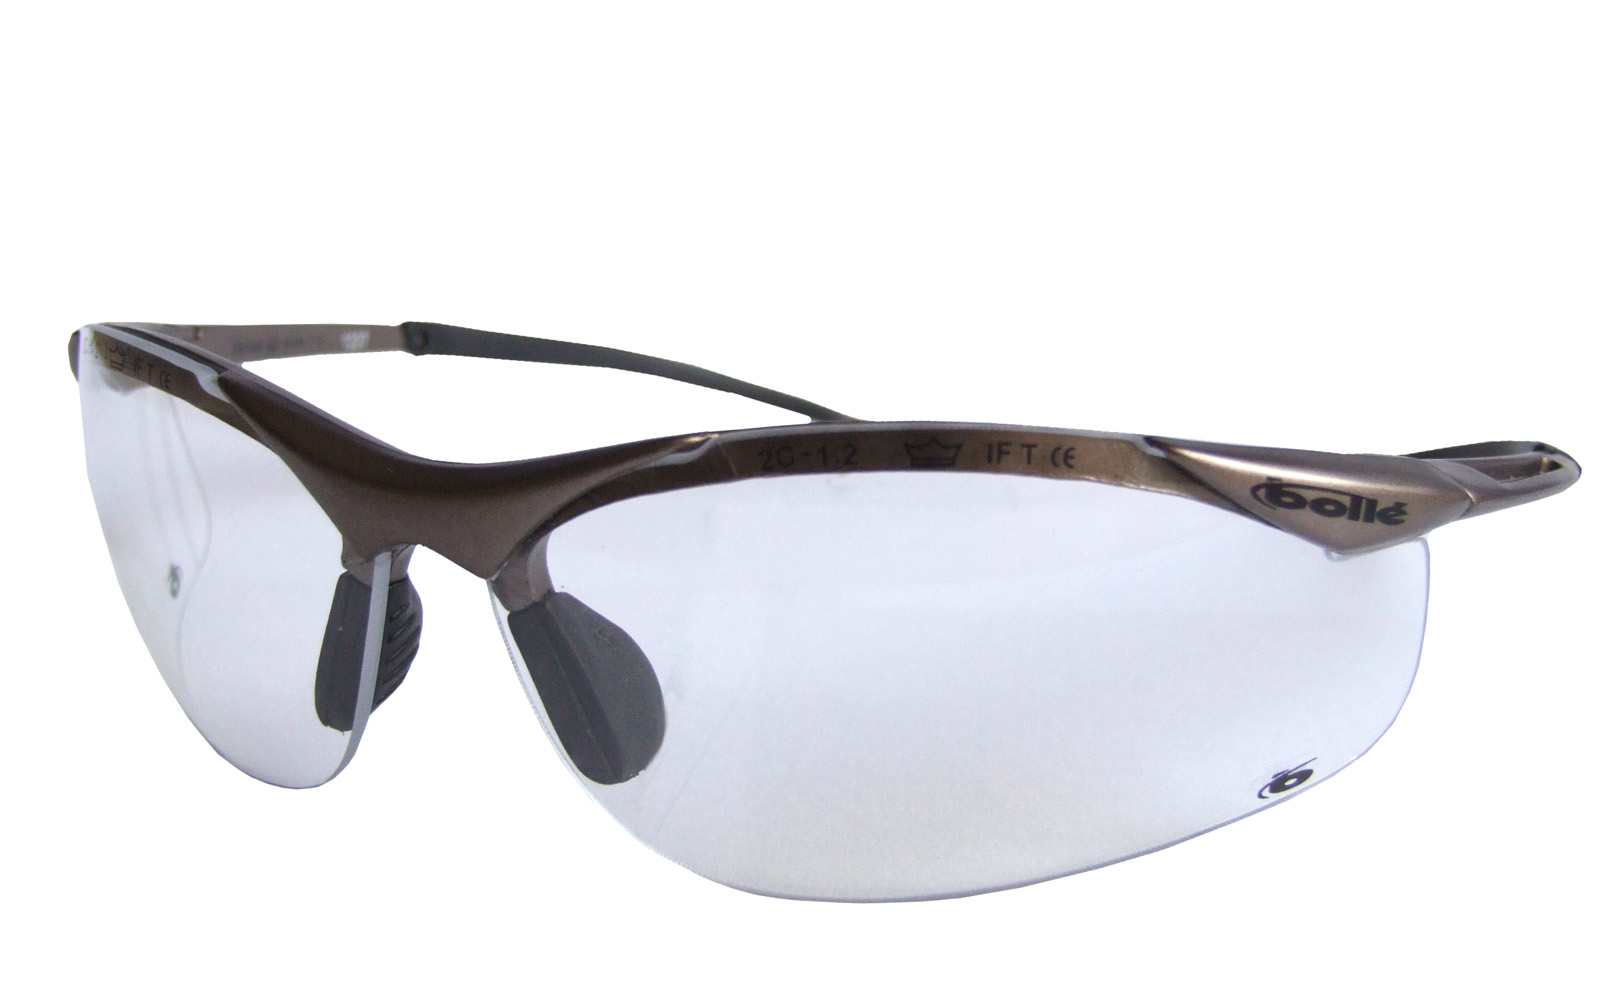 bolle contour safety specs glasses clear lens free bag 20g